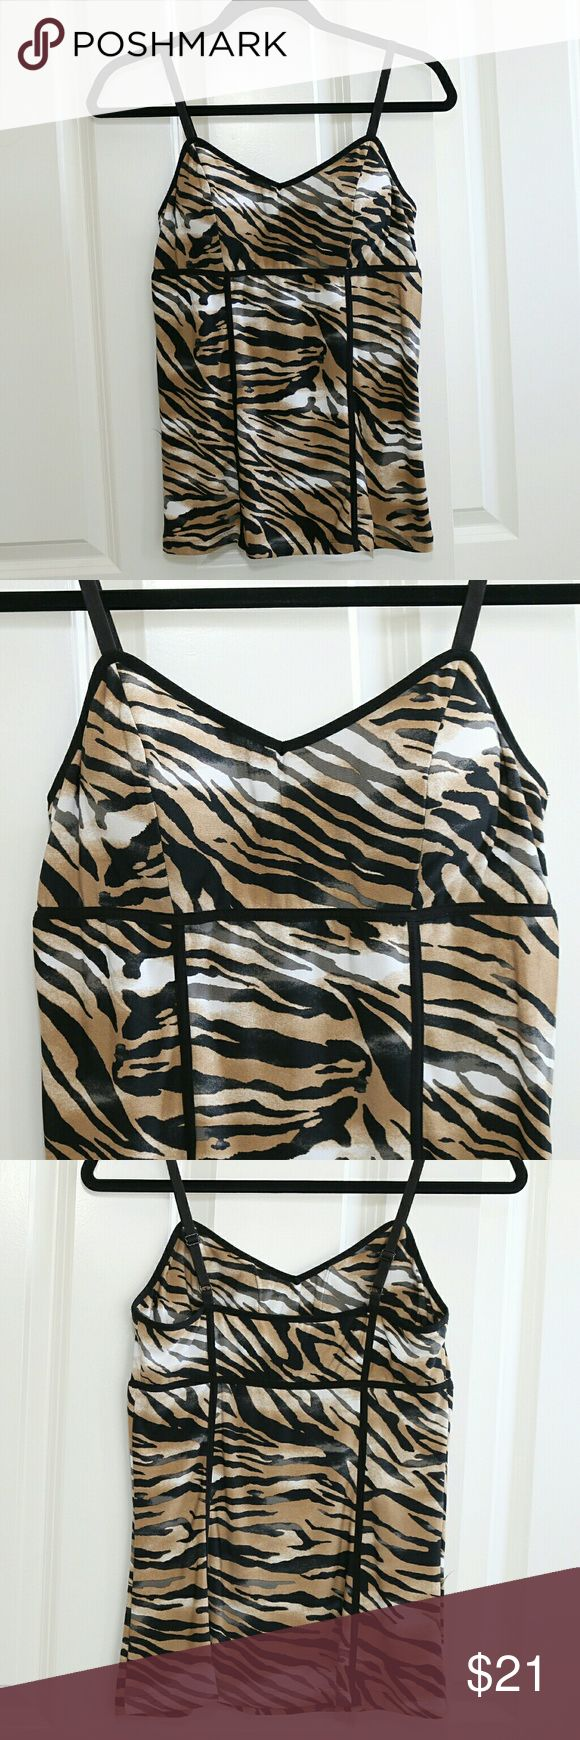 CACHE Animal Print Cami Tank CACHE animal print cami / tank with built in bra.? Size Medium.? About 15-16 inches from armpit to armpit.? Adjustable straps.? Poly/Spandex.? Previously owned but in excellent condition.? Little to no wear. Cache Tops Tank Tops